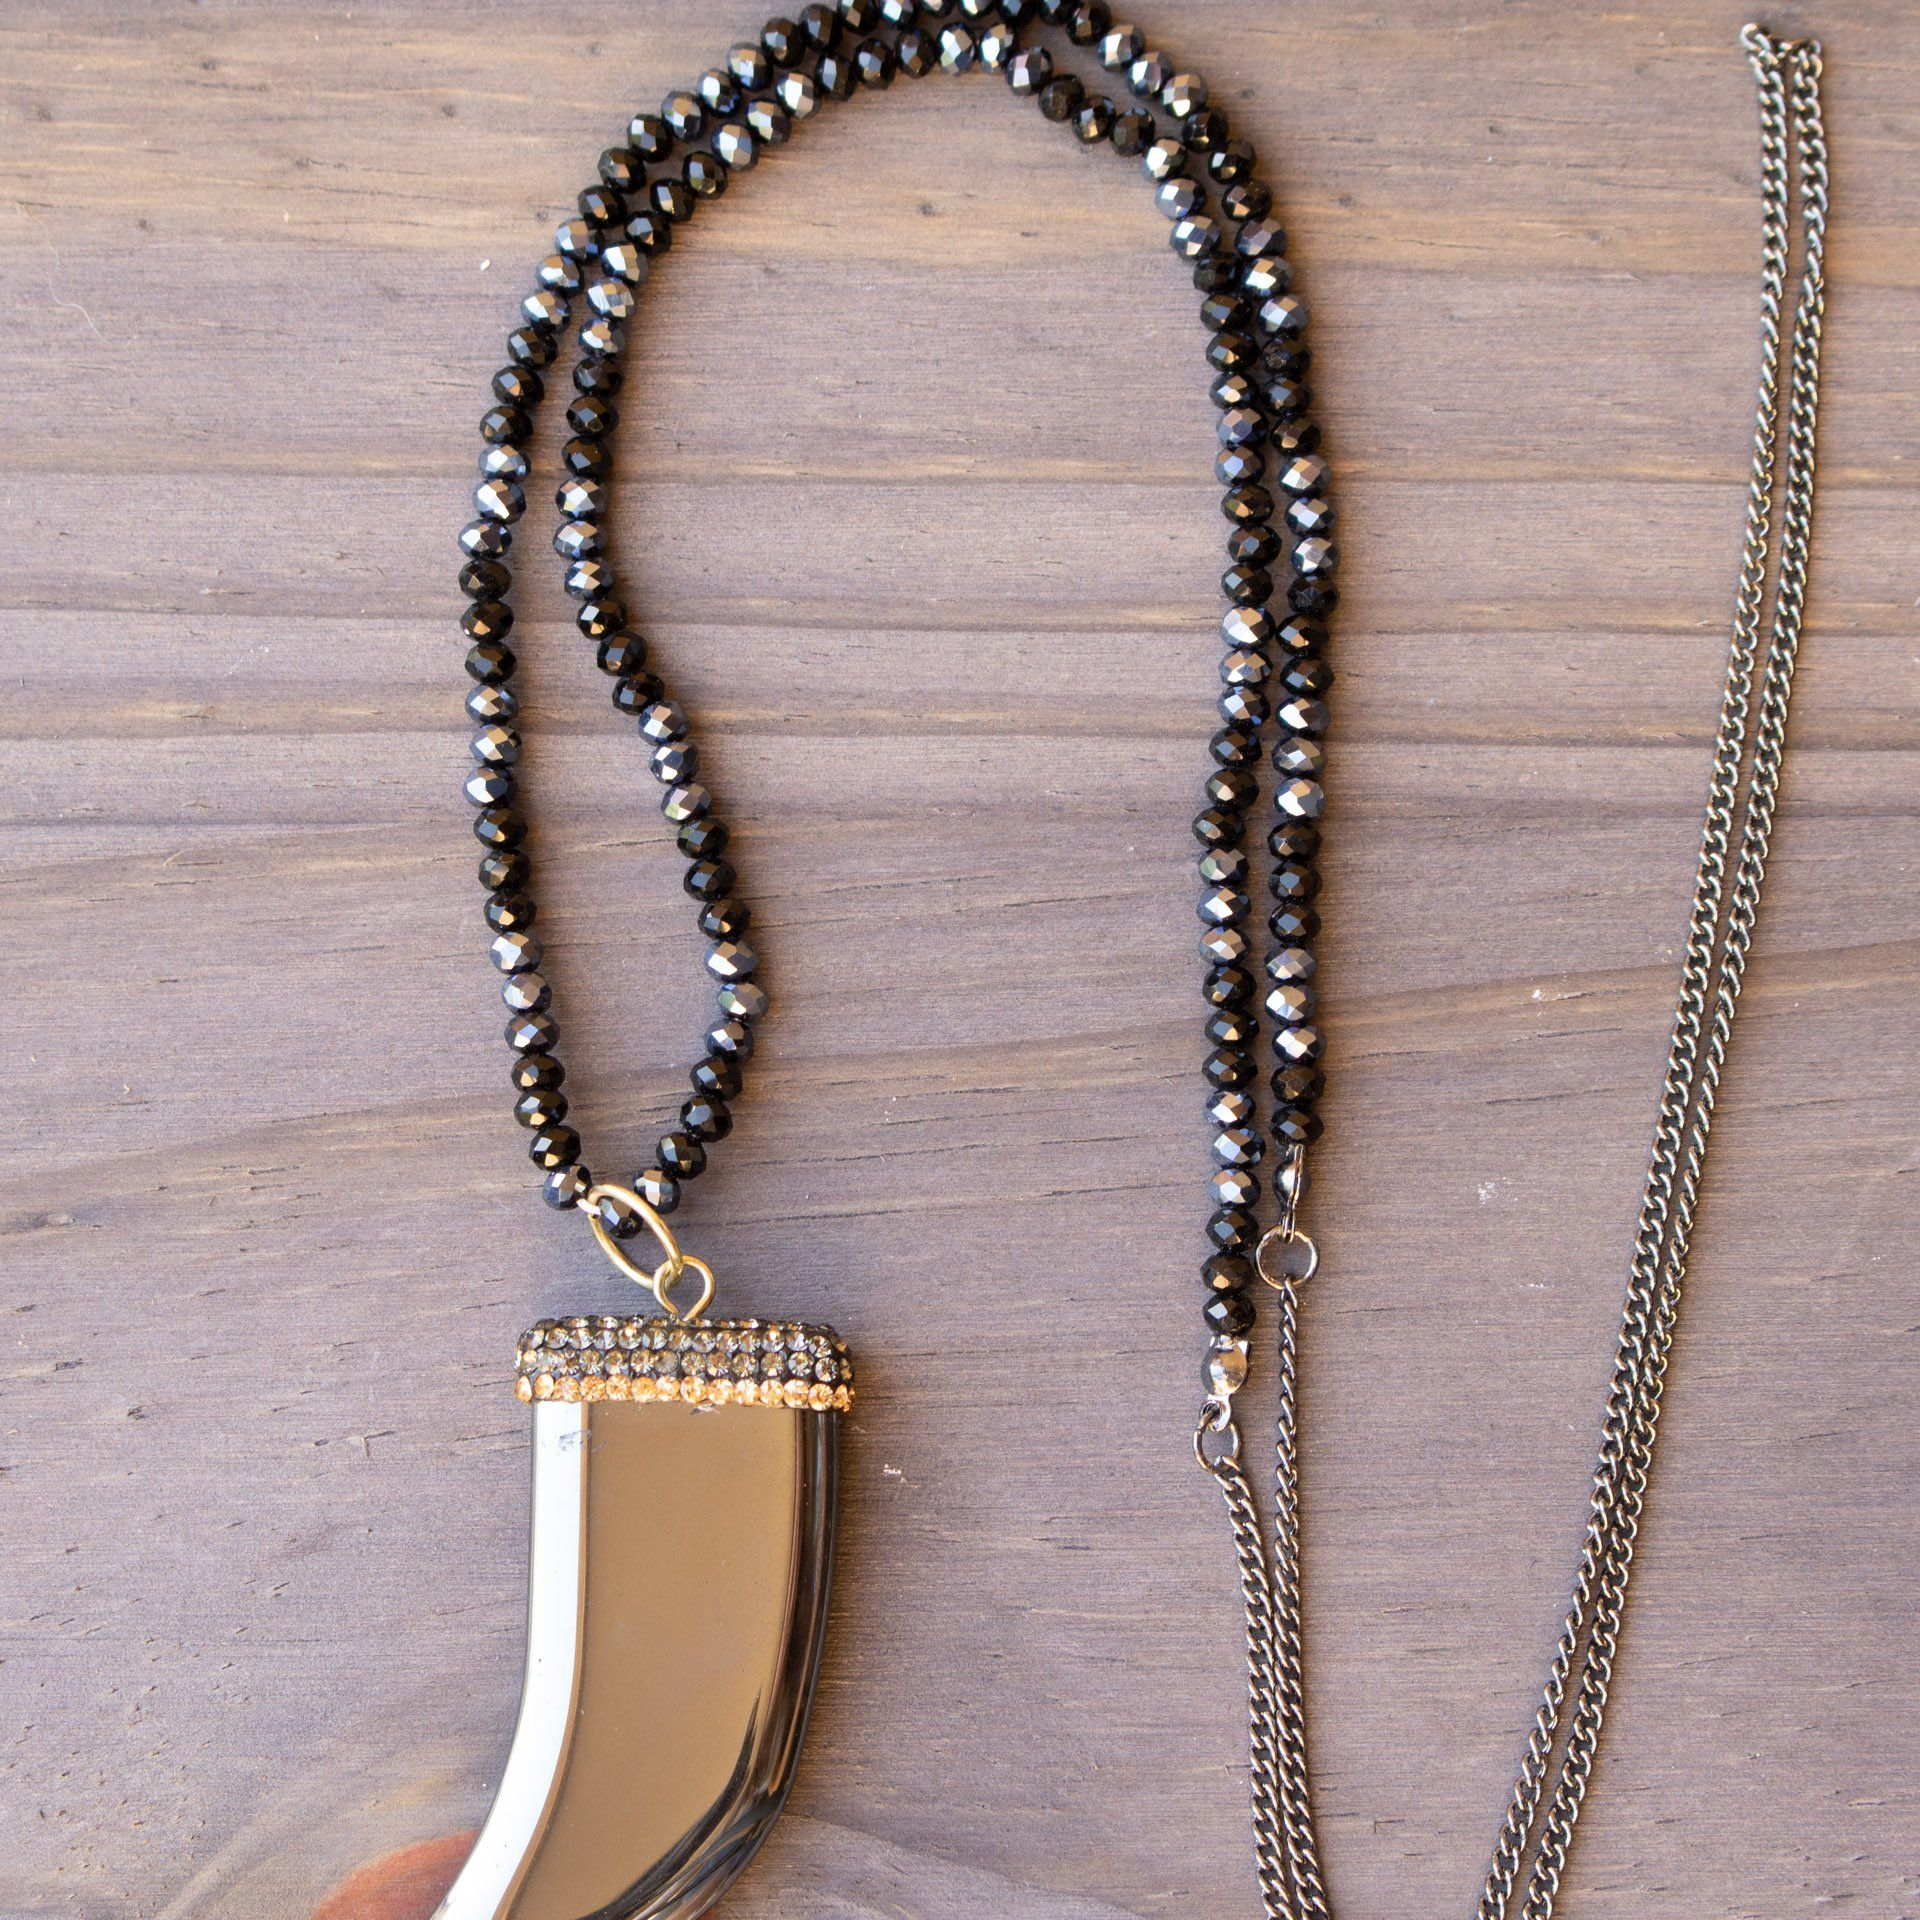 Beaded Necklace With Crystal Rhinestone Hematite Pendant - Arlo and Arrows